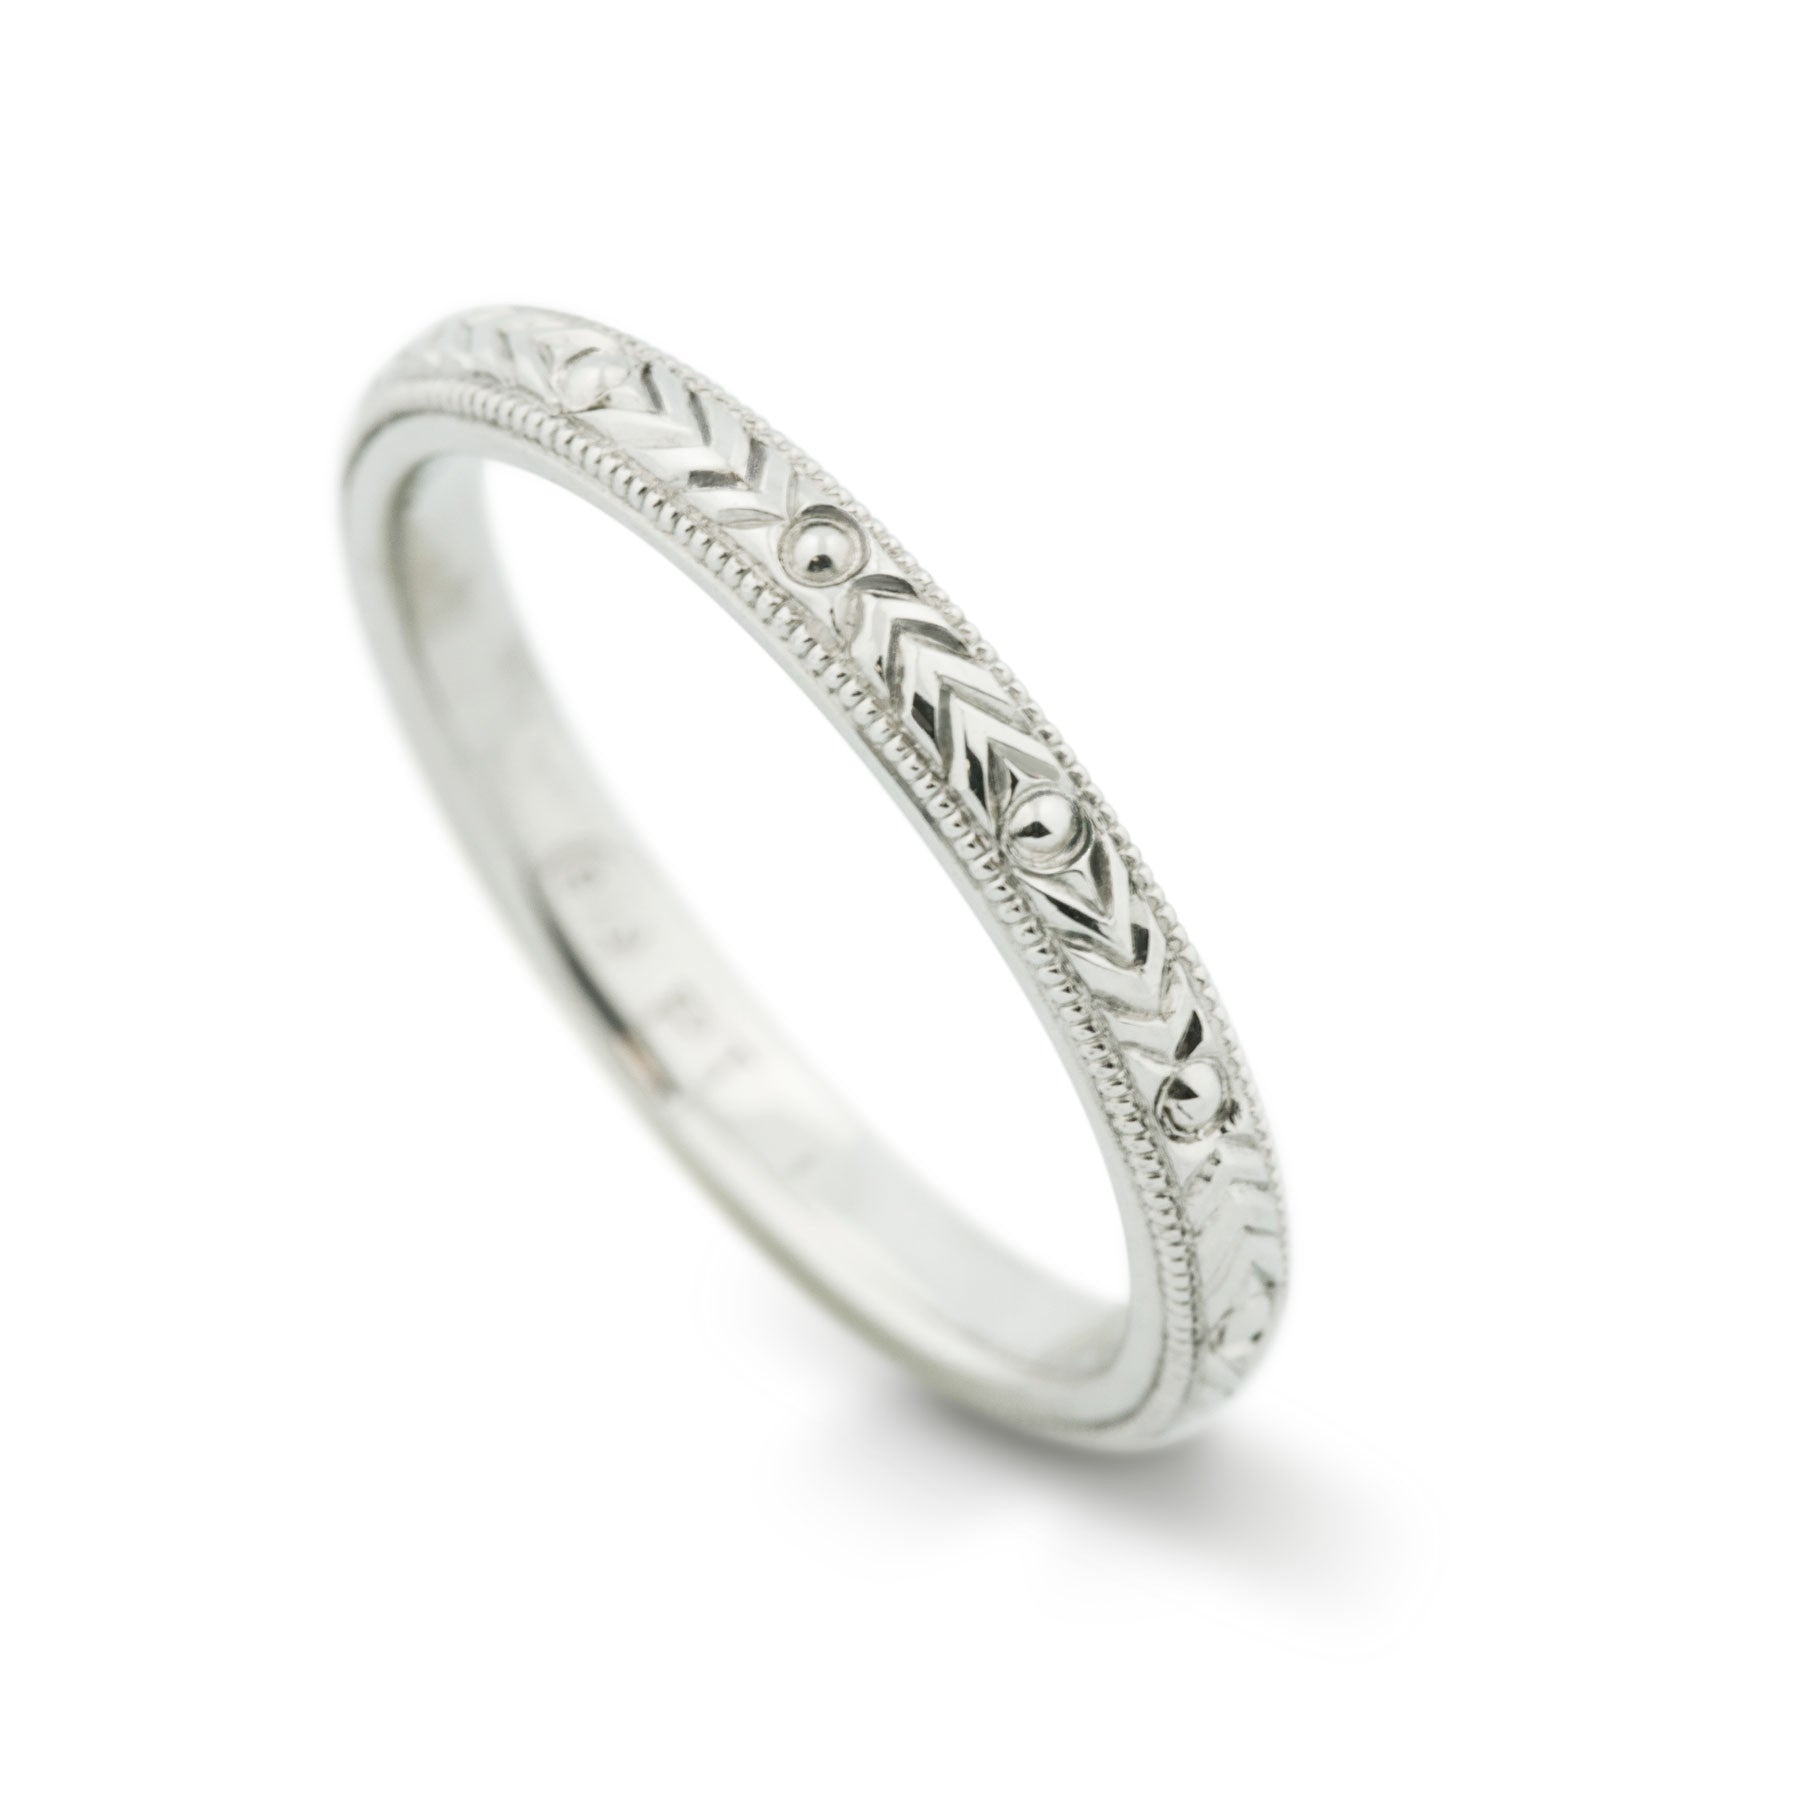 Herringbone Platinum Engraved Wedding Band - Era Design Vancouver